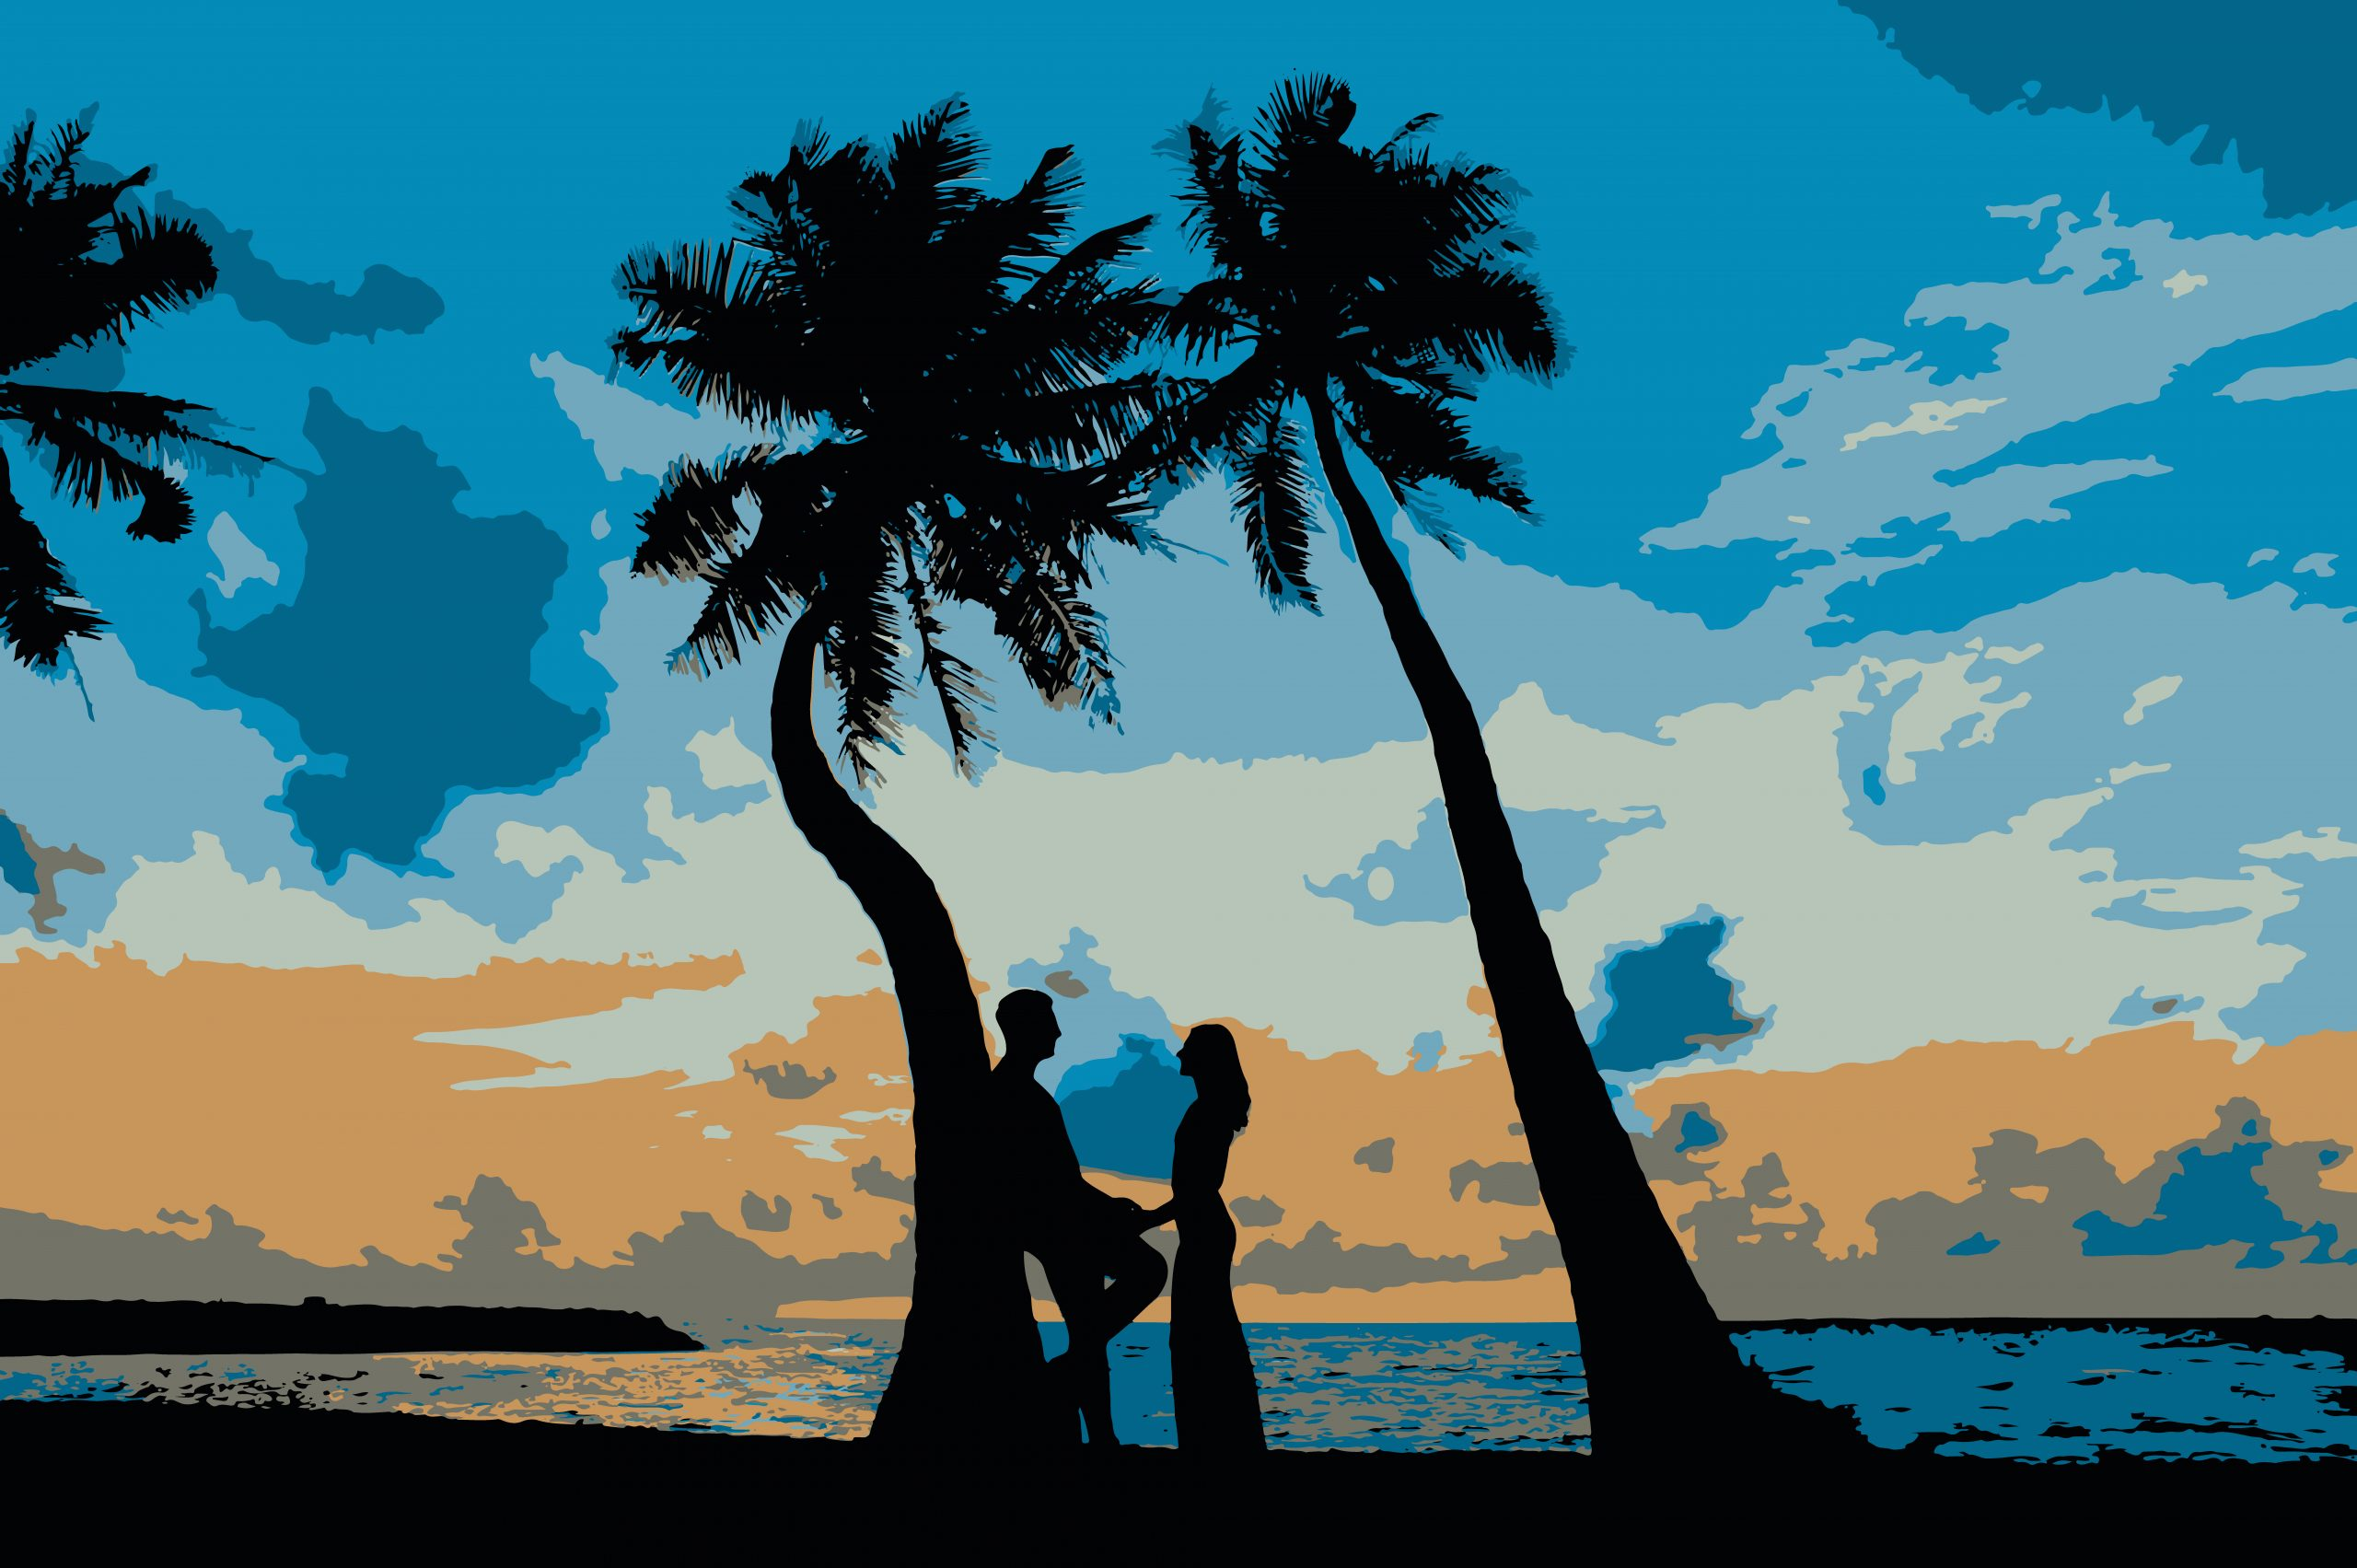 Illustration of a couple under palm trees